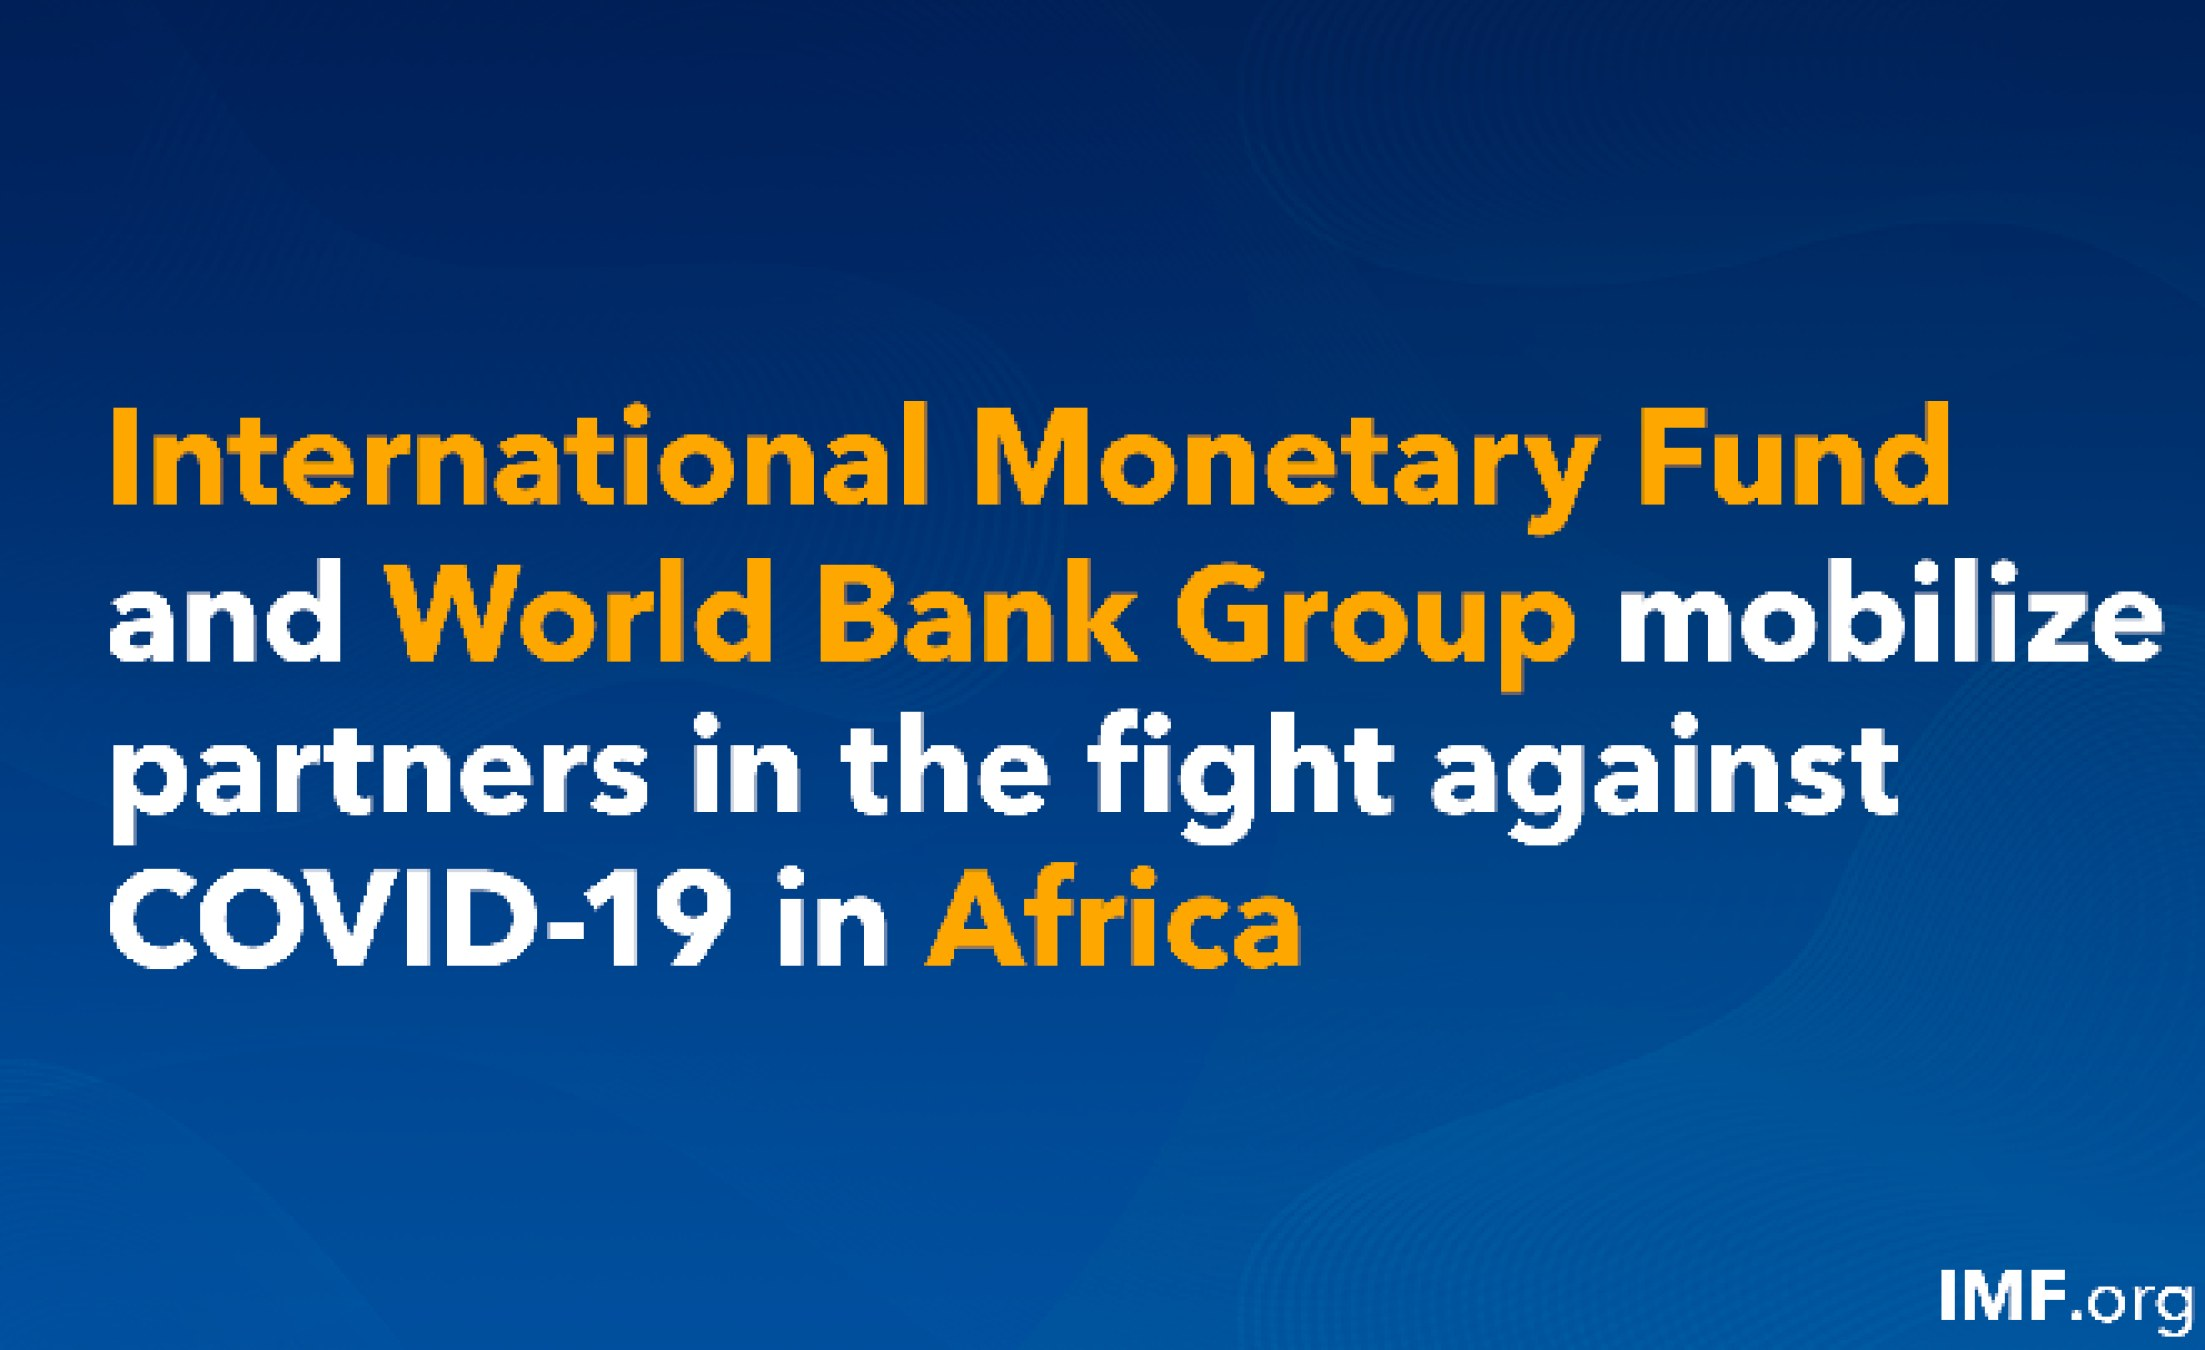 Africa: World Bank Group and IMF mobilize partners in the fight against COVID-19 in Africa